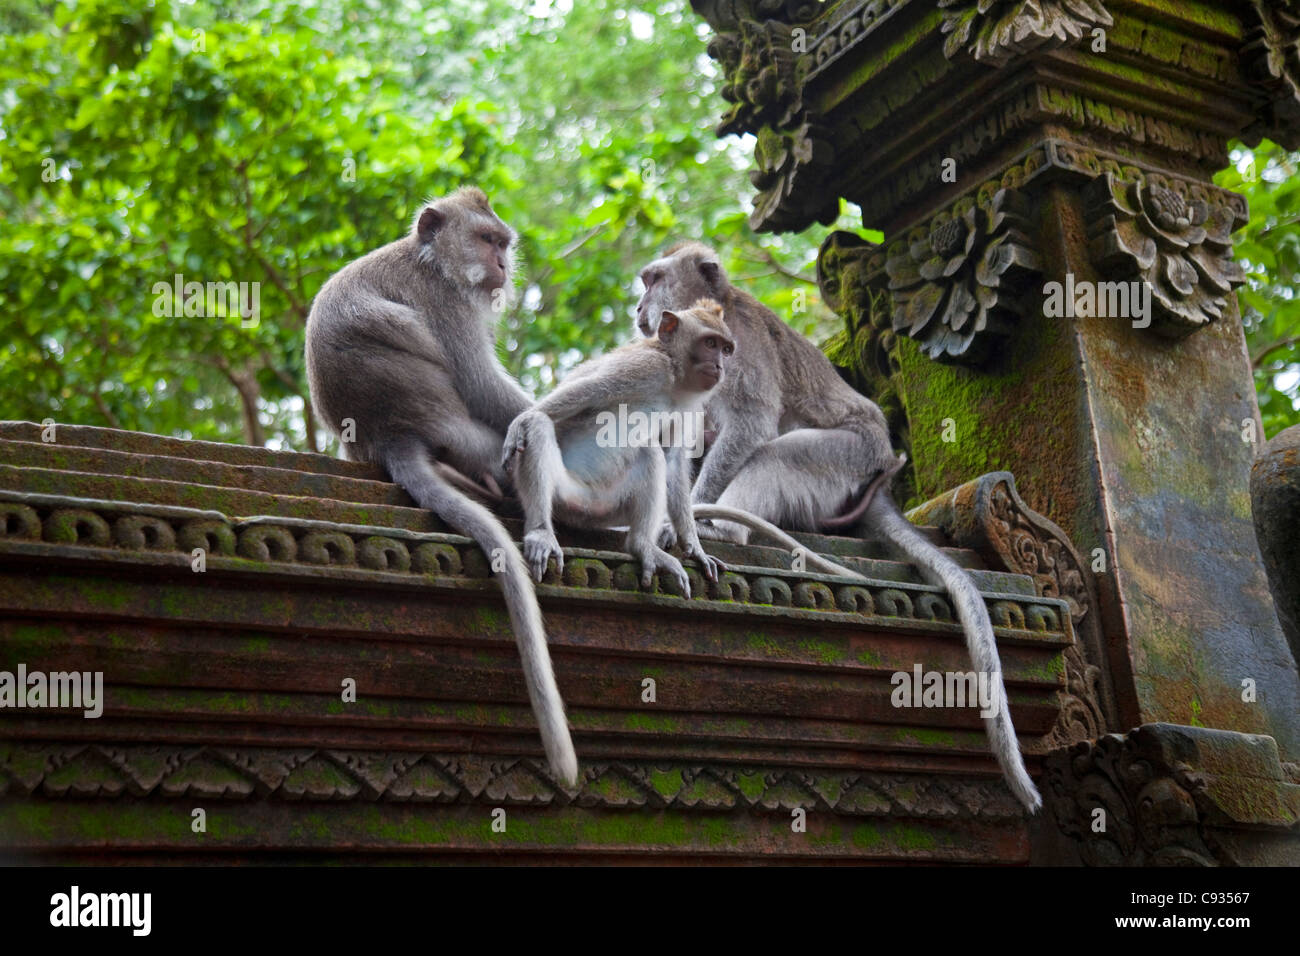 Bali, Ubud. Macaques sitting patiently on a carved wall in Ubud's Sacred Monkey Forest. - Stock Image